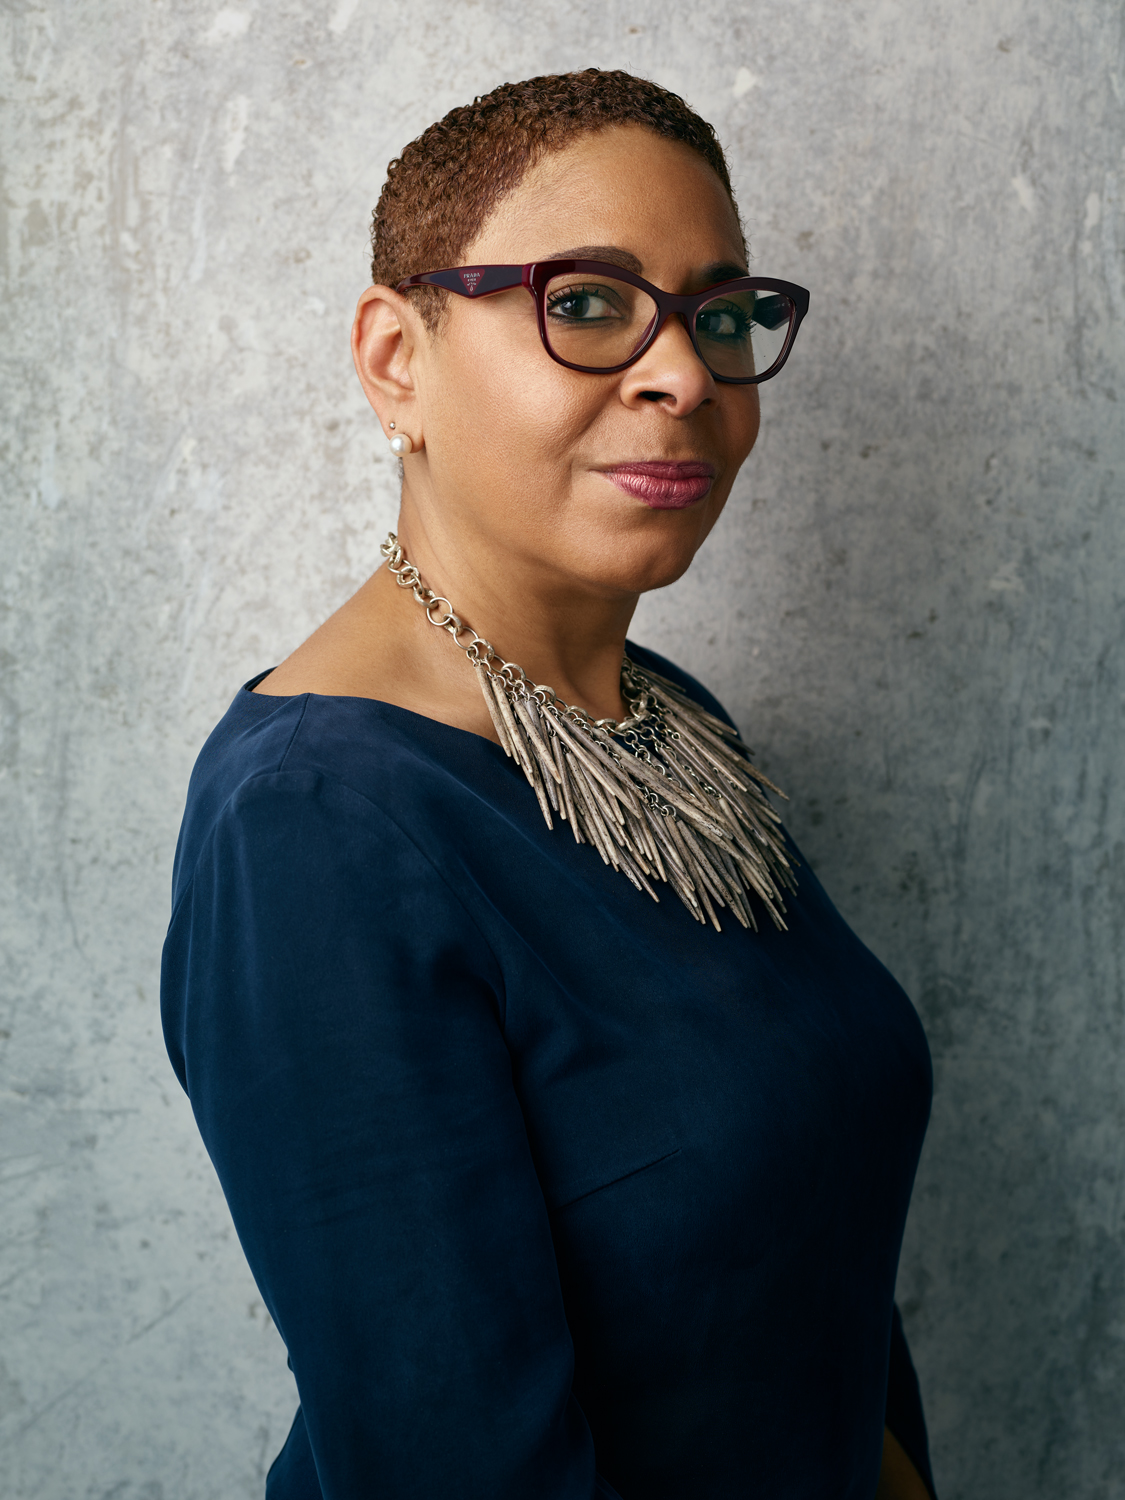 Janiece Evans-Page  is the Vice President of Global Philanthropy and Sustainability at Fossil Group